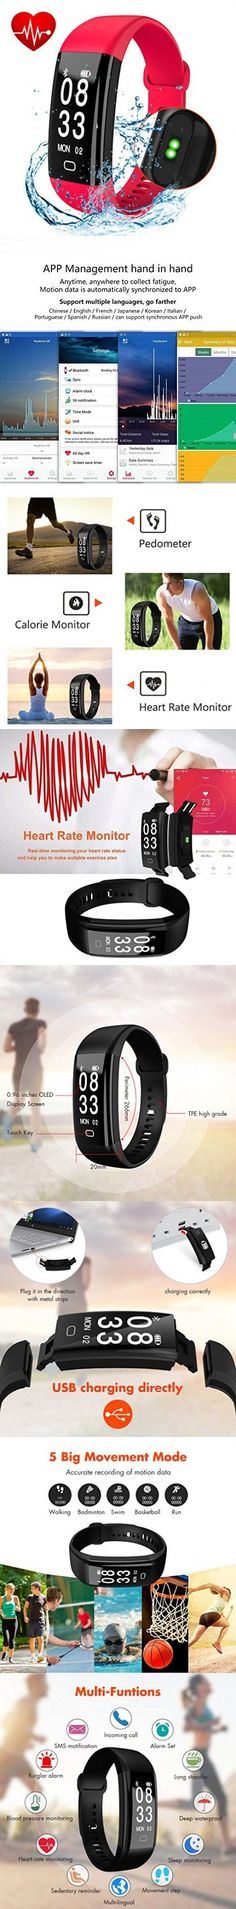 Fitness Tracker, Cafar Fitness Watch, Waterproof Activity Tracker With Heart Rate Monitor, Sleep Monitor, Waterproof Smart Bracelet Pedometer Wristband for Android and IOS #fitnesstracker,